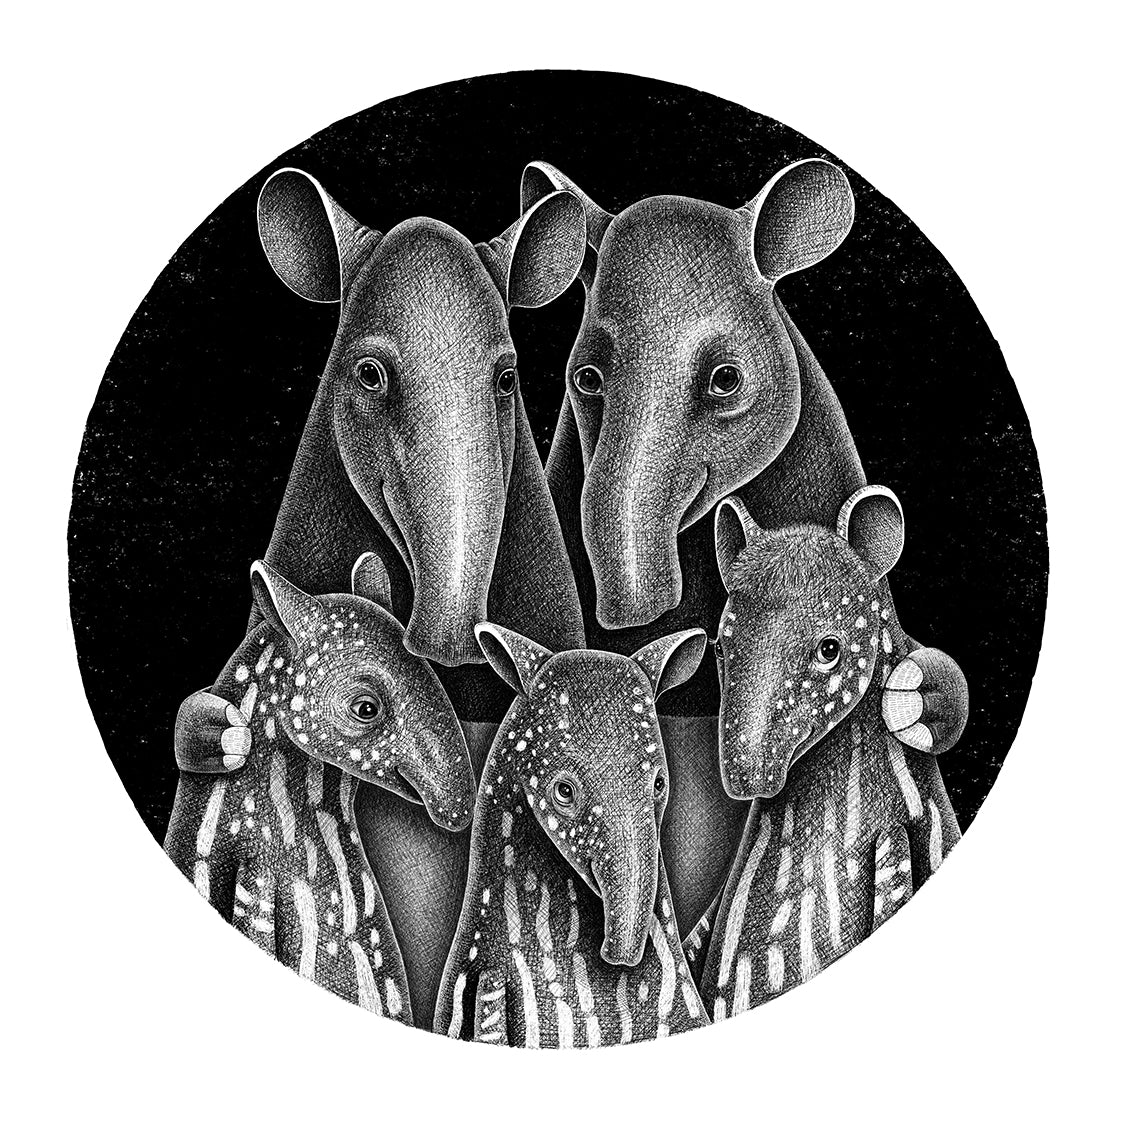 Tapir Family | Black and White Illustration Art Print for Sale | Endangered Animals Collection | Lucia Eggenhoffer